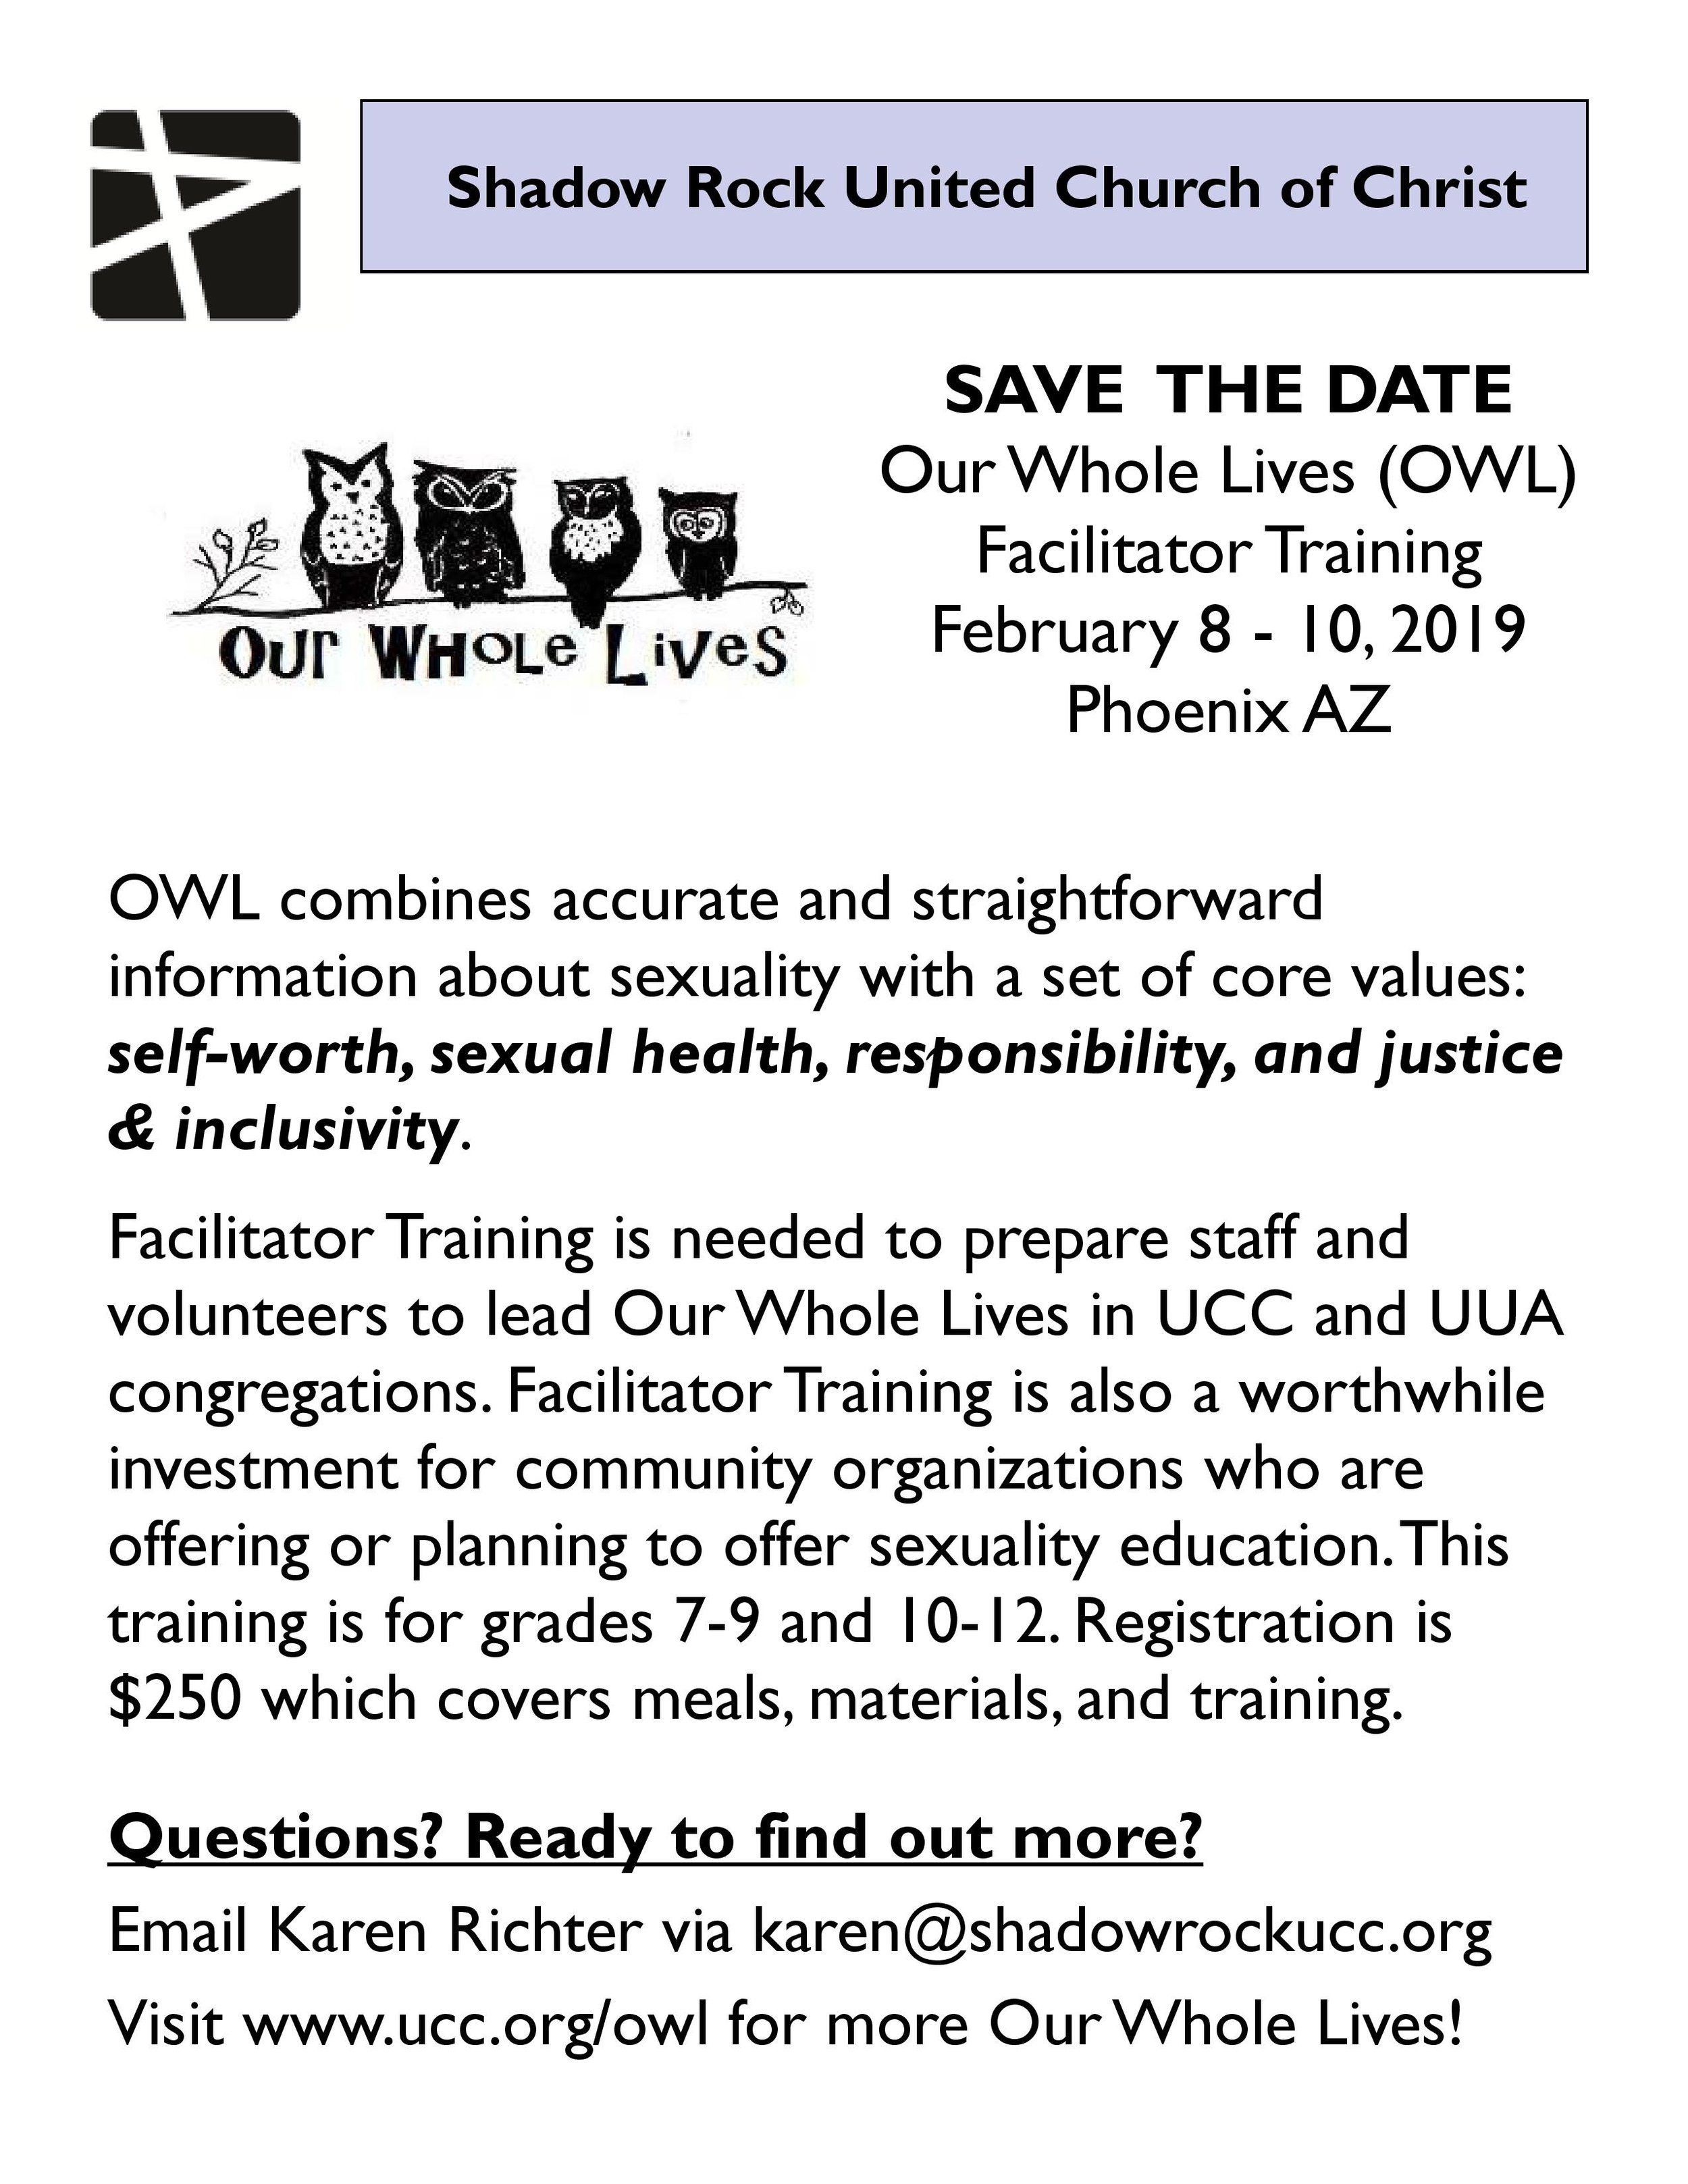 OWL training flyer 2019.jpg